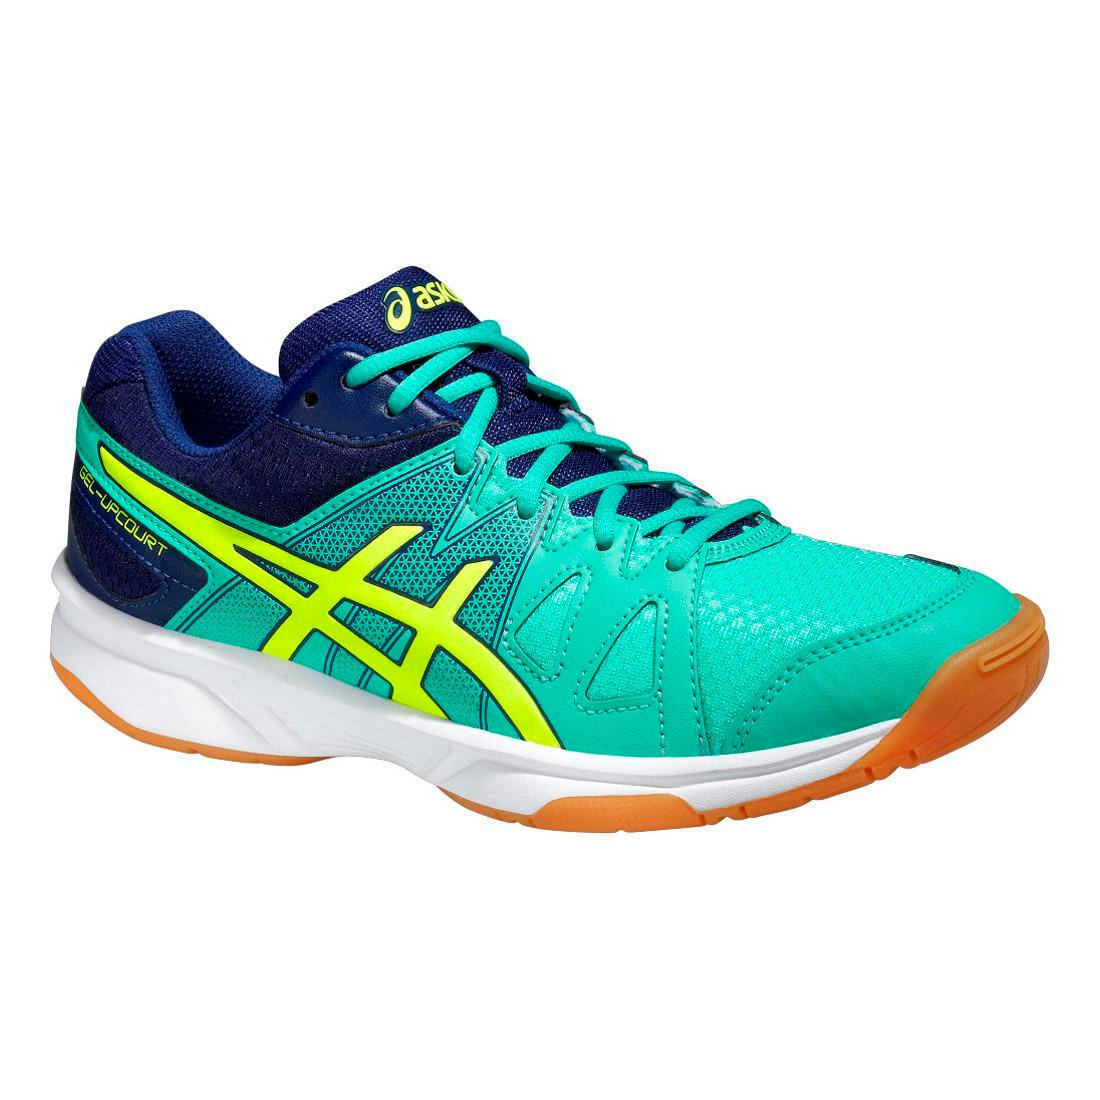 Asics Gel Upcourt Mens Badminton Shoes